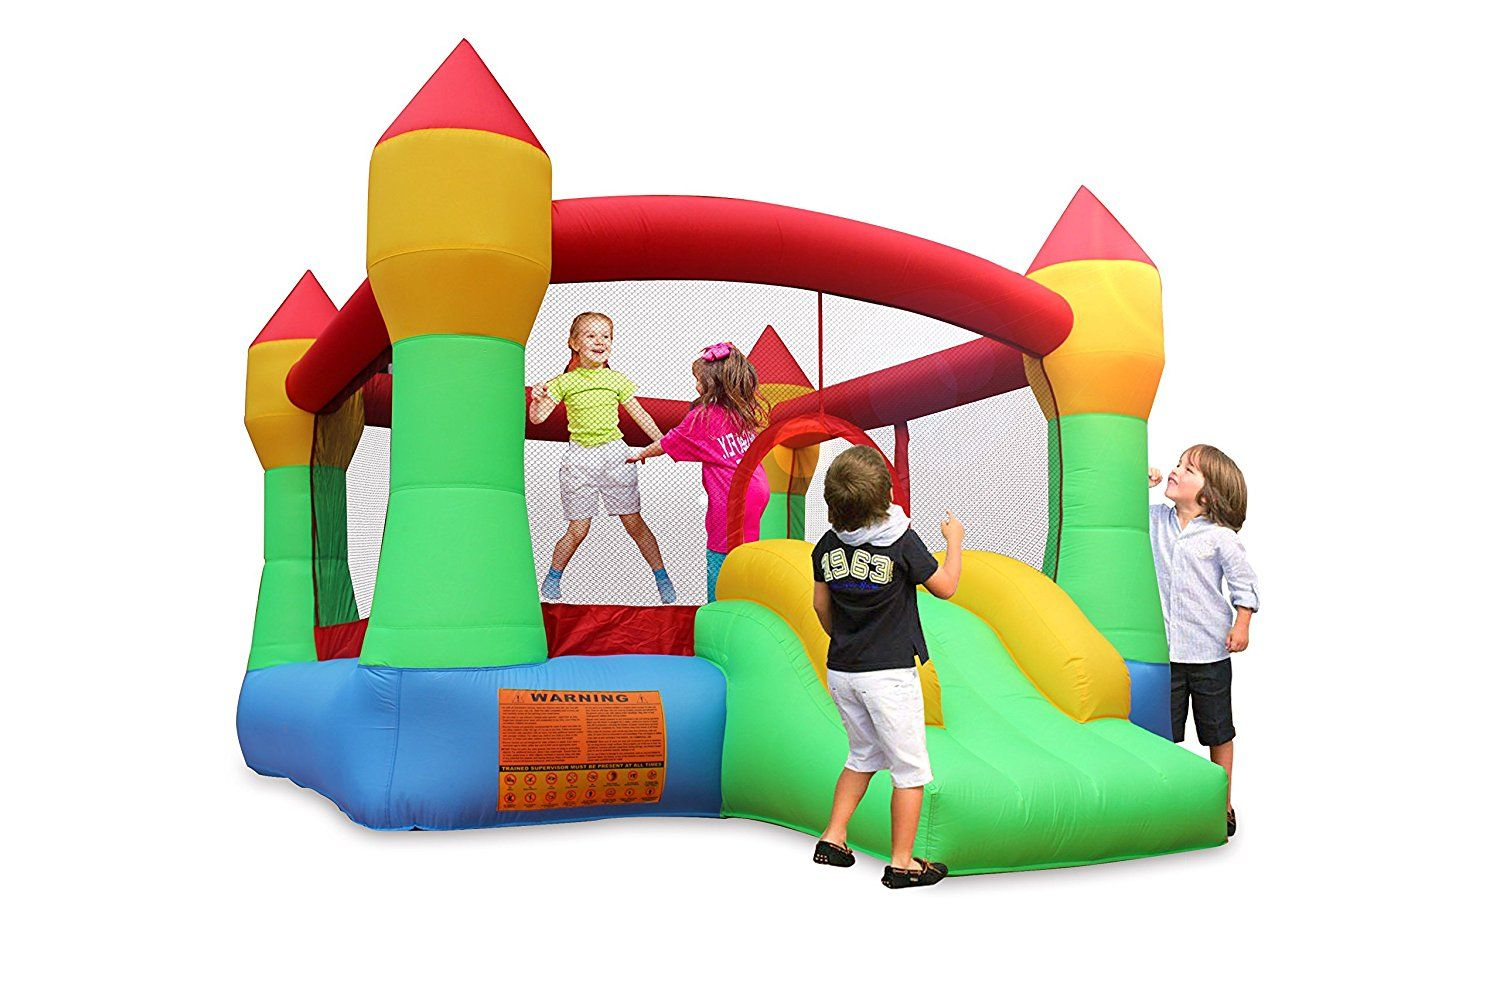 Cloud 9 bouncy castle is great for young families